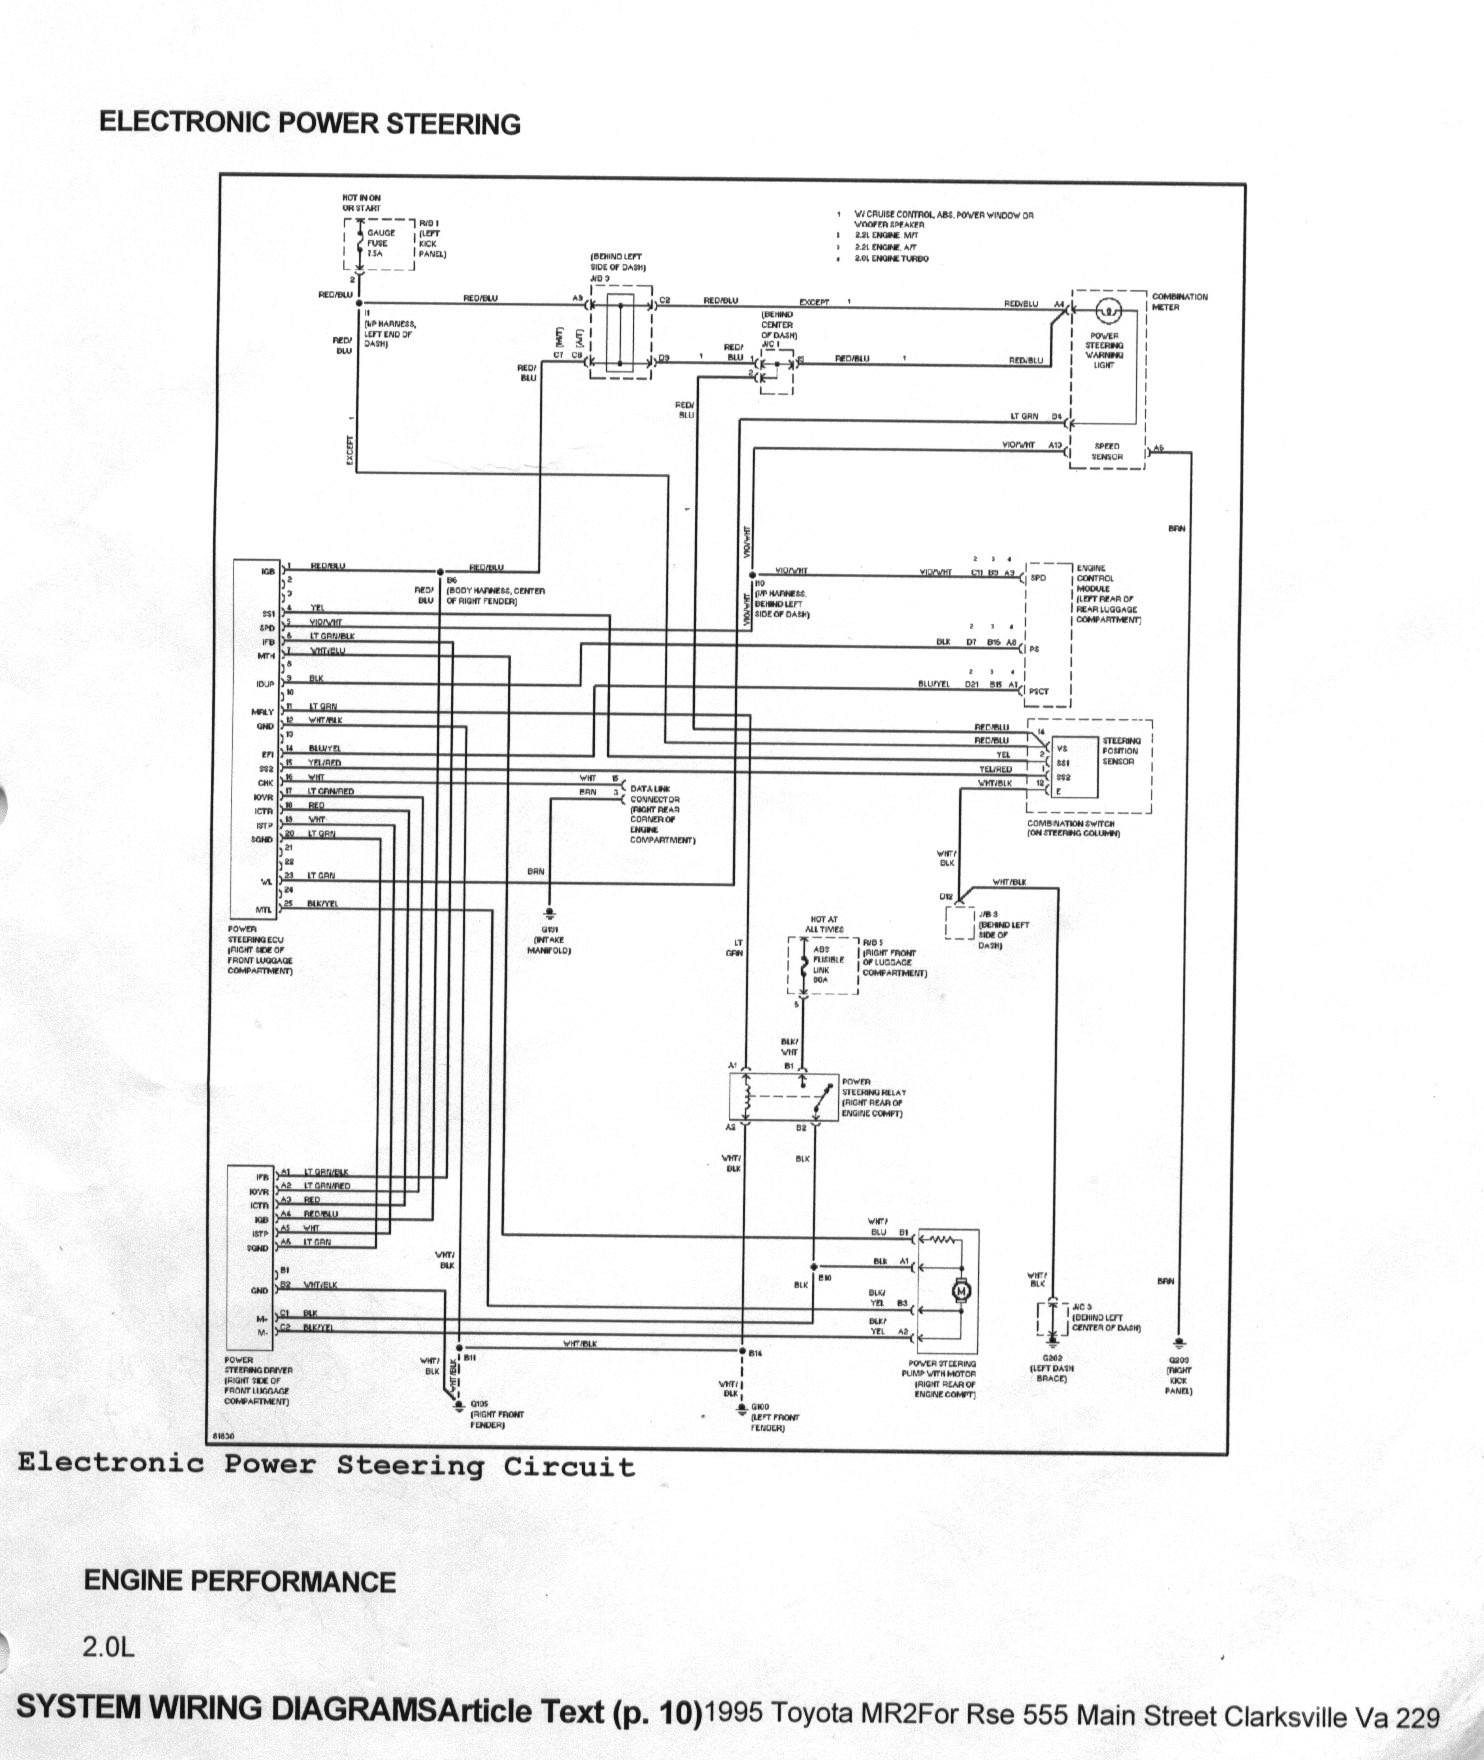 Toyota Mr2 Ecu Wiring Diagram